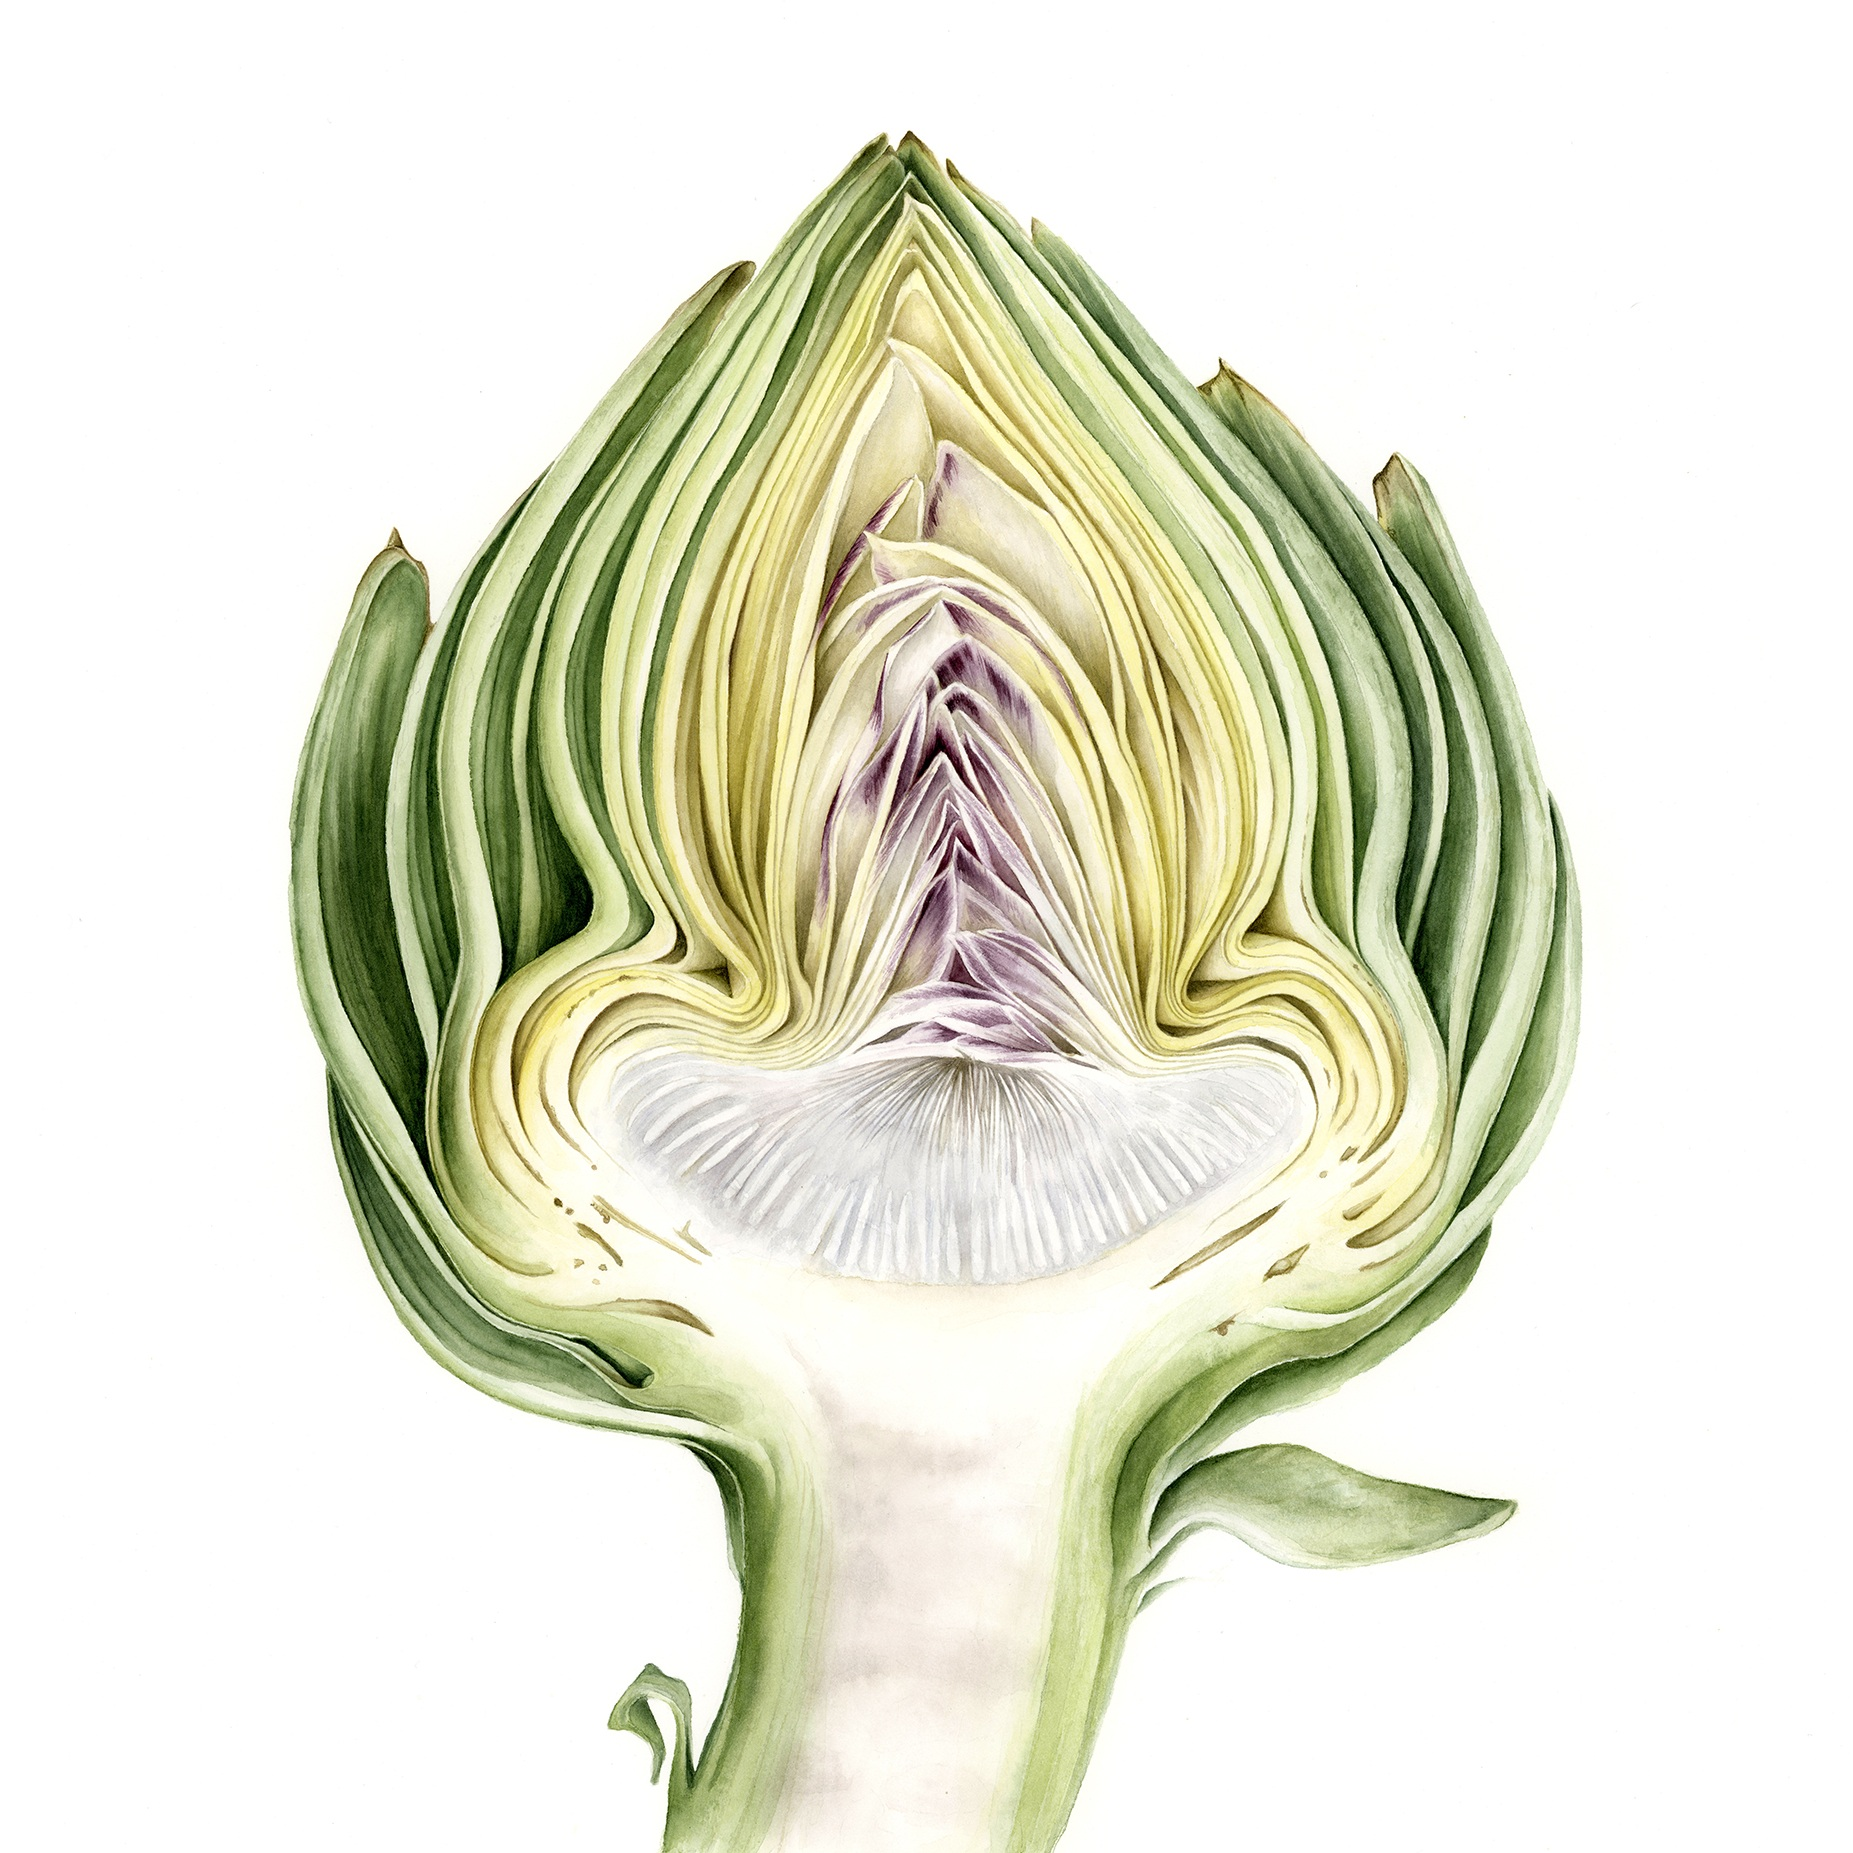 """Artichoke cross-section - Cynara scolymusAs this is the immature flower most commonly found in grocery stores, the inflorescence of the artichoke has deep and mysterious layers that reveal the varied color ranges, going from the outer bracts to the inner, softer, edible leaves. This depiction only shows the flowers as a delicate fringe that can irritate the throat if consumed. If left to nature, the artichoke flower matured into a beautiful muppet-like head of purple petals.original, 12x15"""" watercolor on Moulin du Roy hotpressed watercolor paper, 2019$1080Purchase the print"""